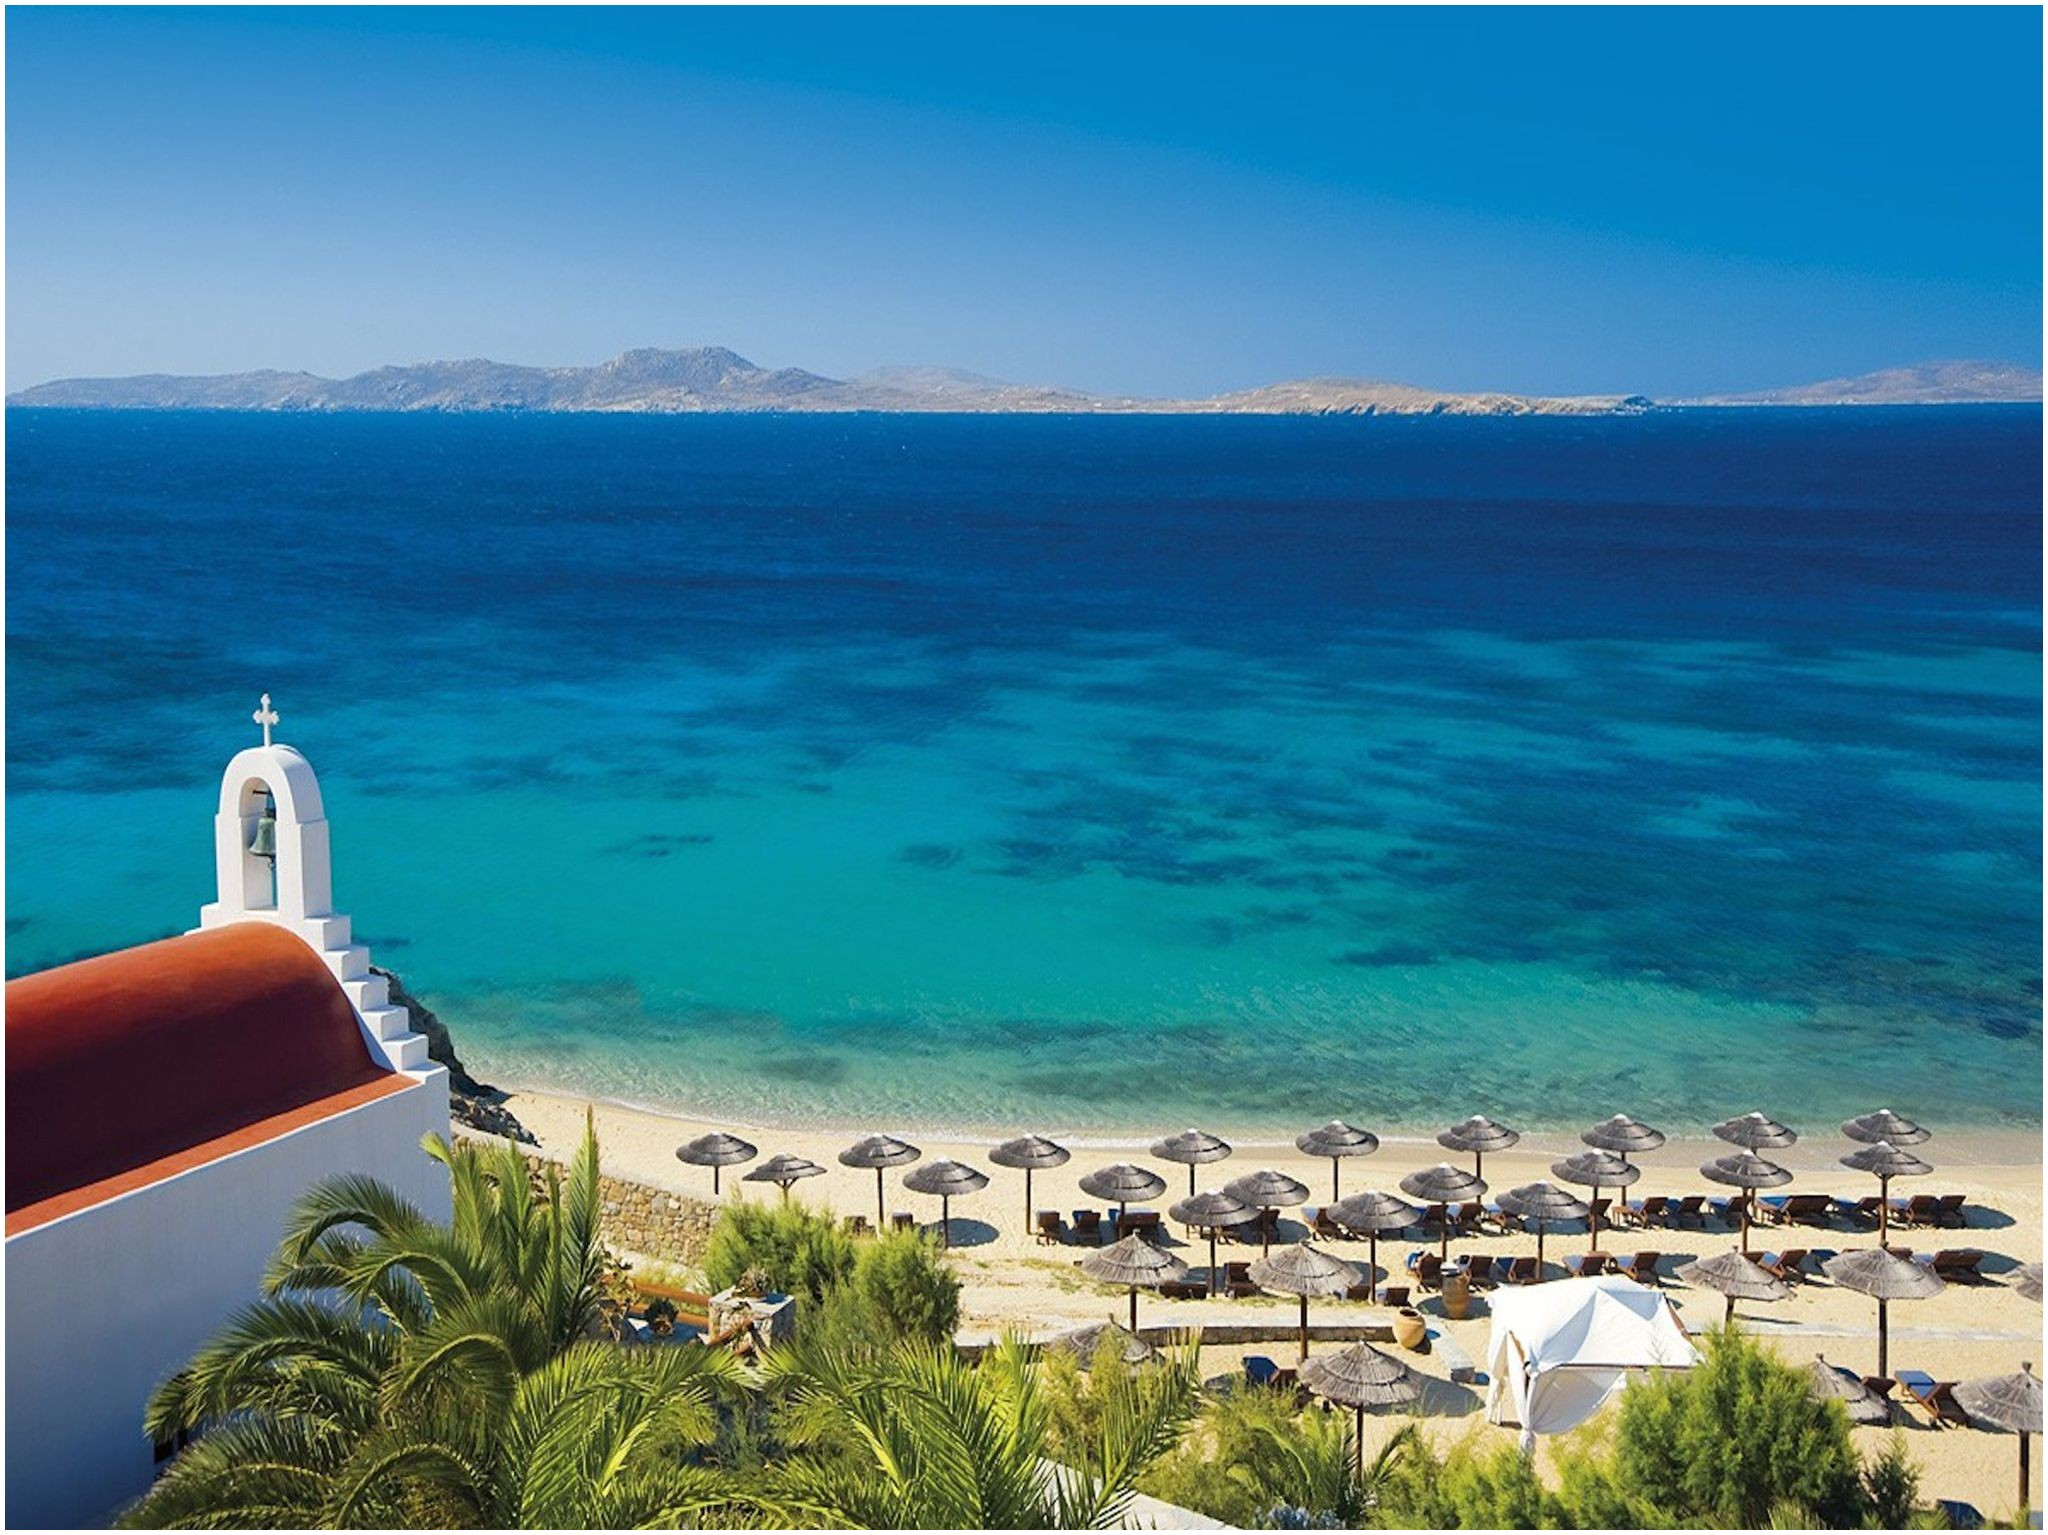 This year s Readers Choice Awards produced a fascinating list of top island beaches in Europe from strands of sand in the North Sea to Croatia s Dalmatian